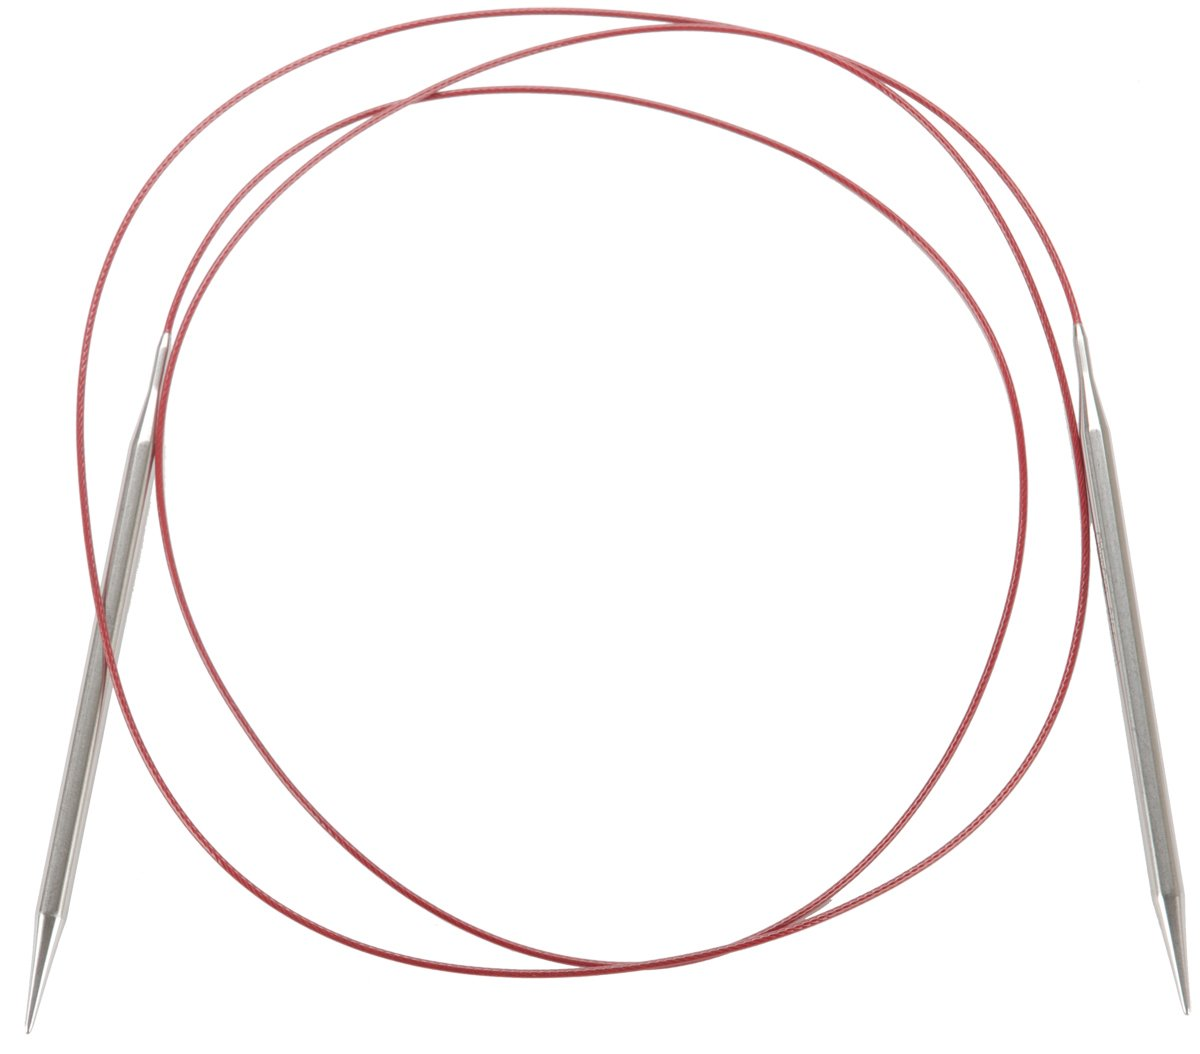 ChiaoGoo Red Lace Circular 60 inch (152cm) Stainless Steel Knitting Needle Size US 13 (9mm) 7060-13